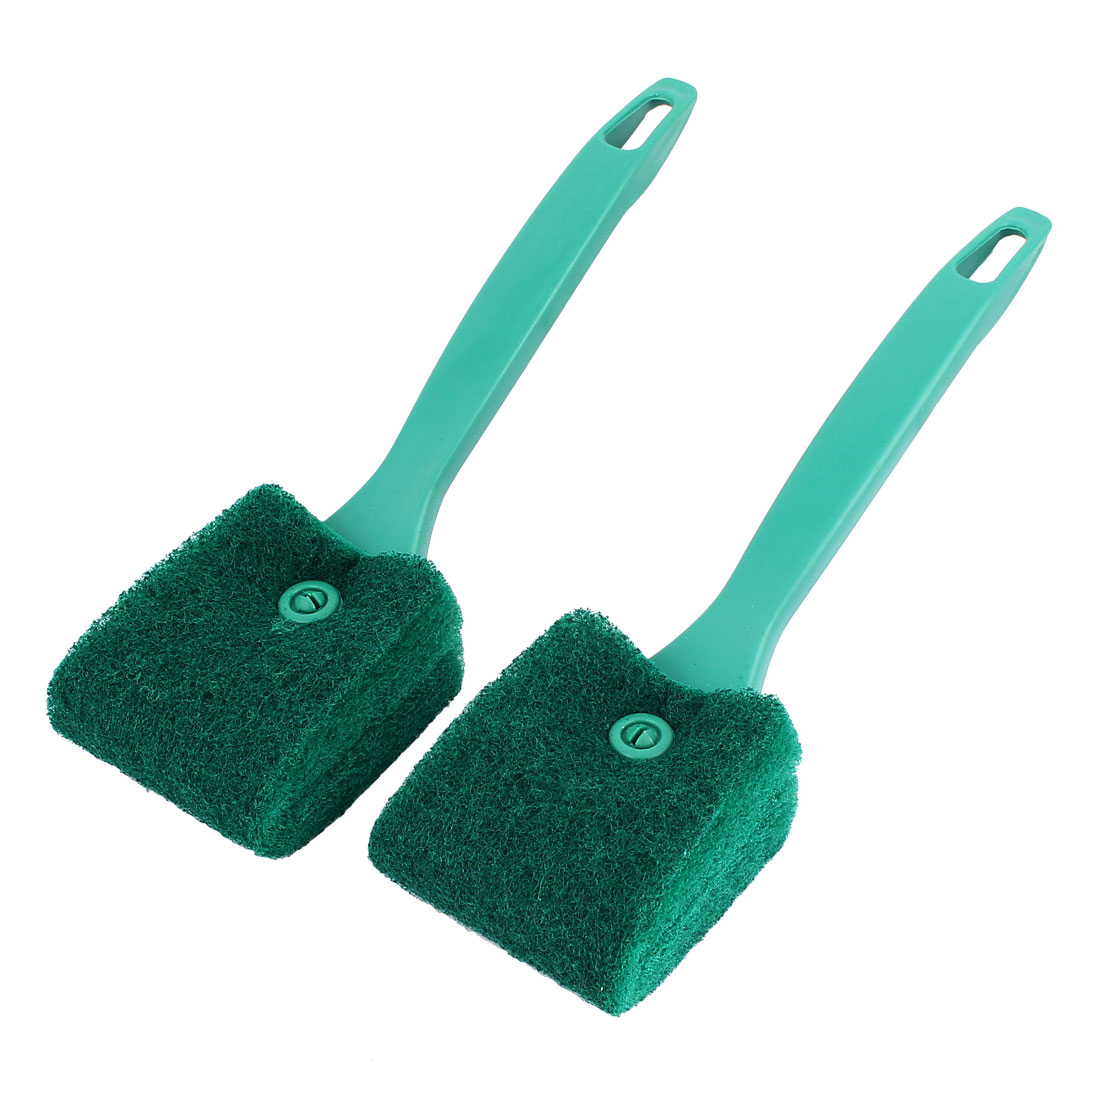 2pcs Green Plastic Grip Aquarium Algae Glass Double Sides Sponge Clean Brush Scrubber Cleaner